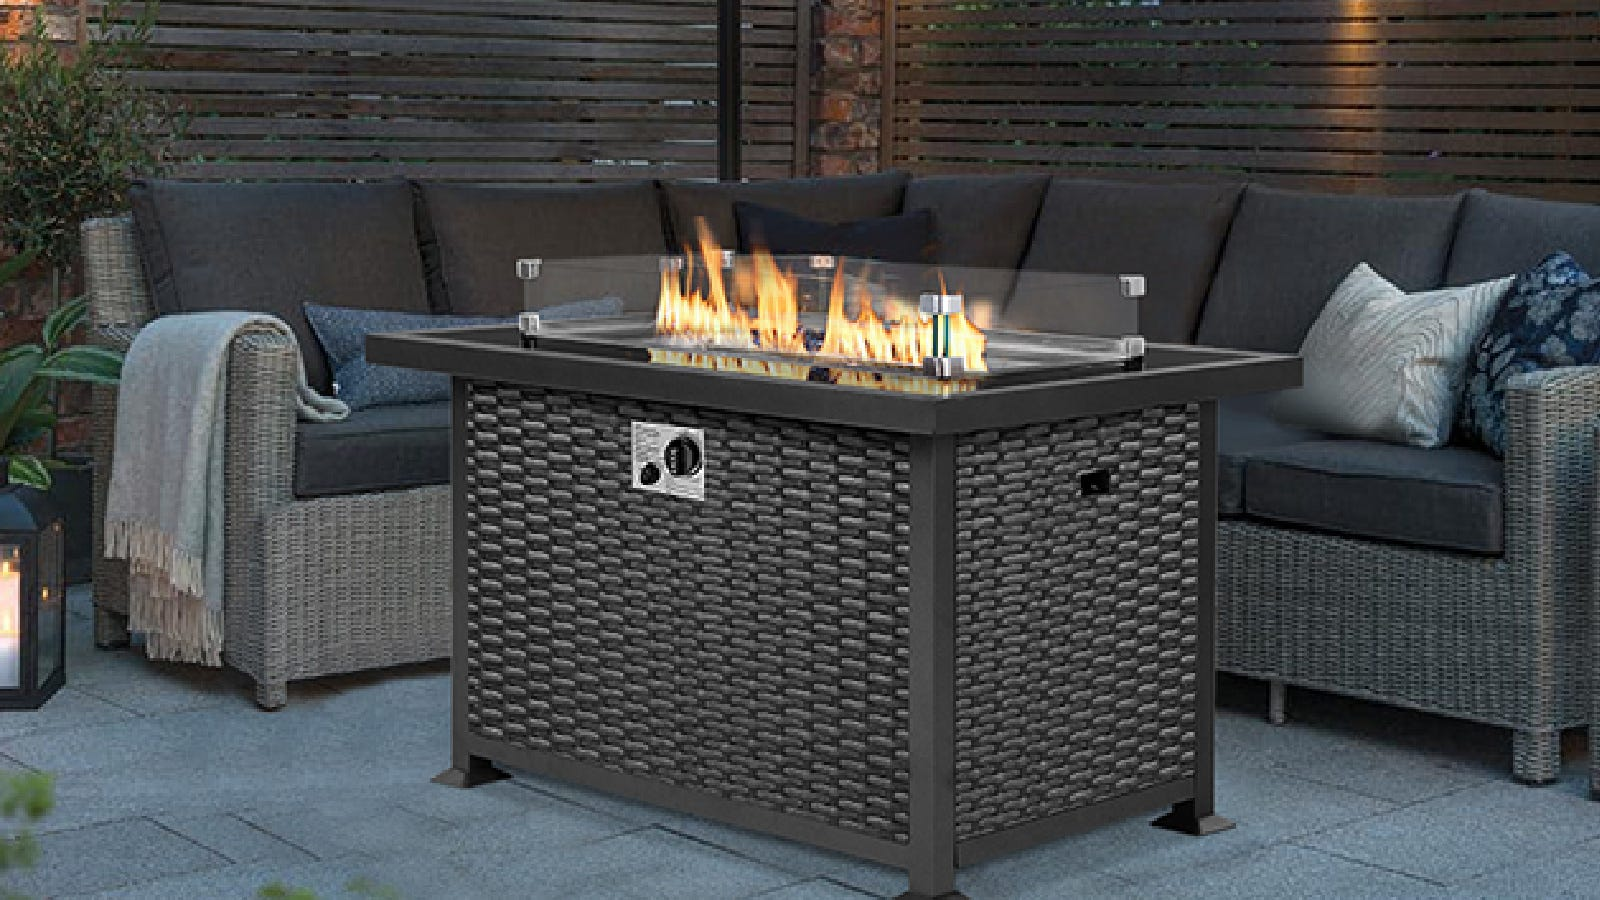 A lovely rectangular shaped fire table by U-Max, fit nicely in the middle of sofa style patio furniture, in a cozy outdoor setting.